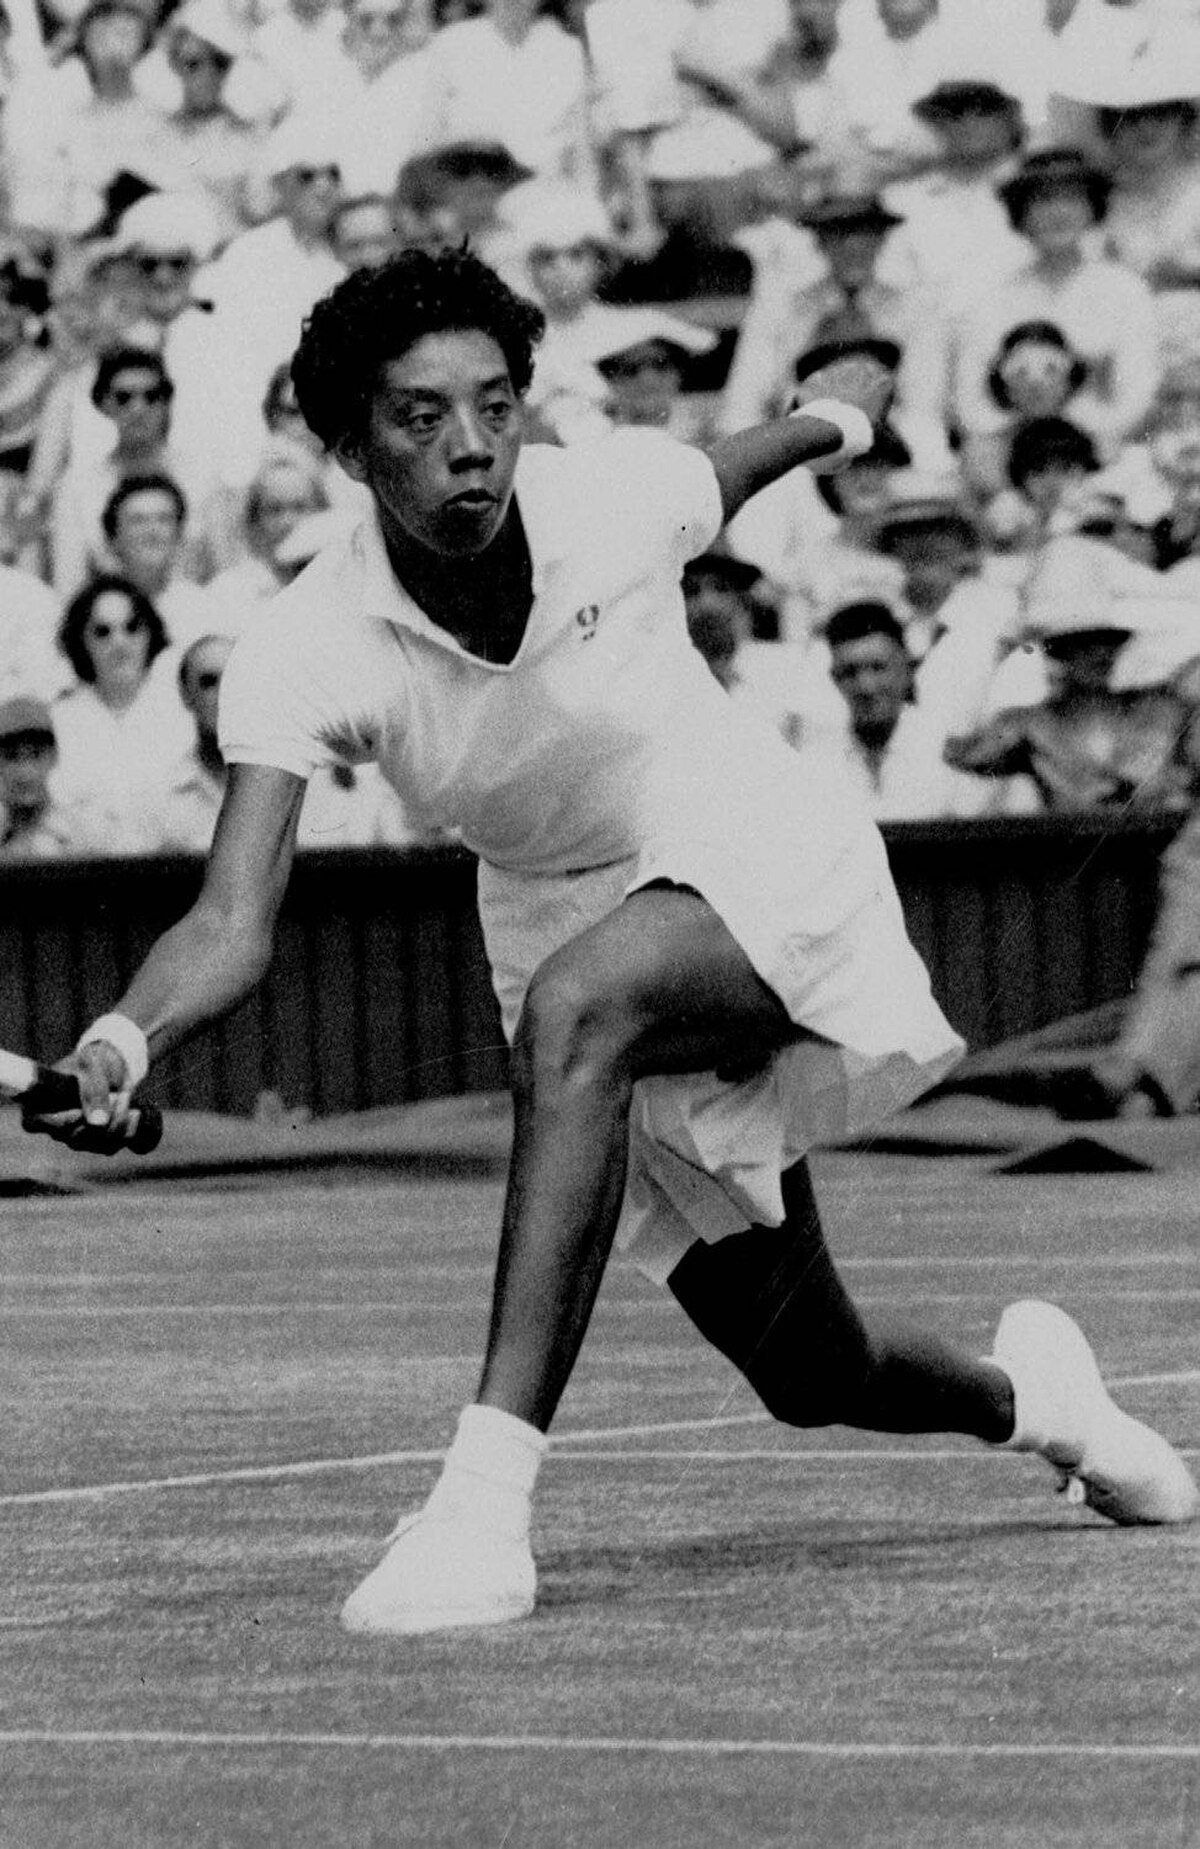 Althea Gibson makes a return to Darlene Hard during their title match at Wimbledon, which Gibson won 6-3, 6-2, in this July 6, 1957, file photo. Gibson, a champion tennis player in the 1950s who was the first black to win Wimbledon and U.S. national titles, died Sunday, Sept. 28, 2003. She was 76. Gibson had been seriously ill for years and died at East Orange General Hospital, where she had spent the last week, according to Darryl Jeffries, a spokesman for the city of East Orange, N.J.